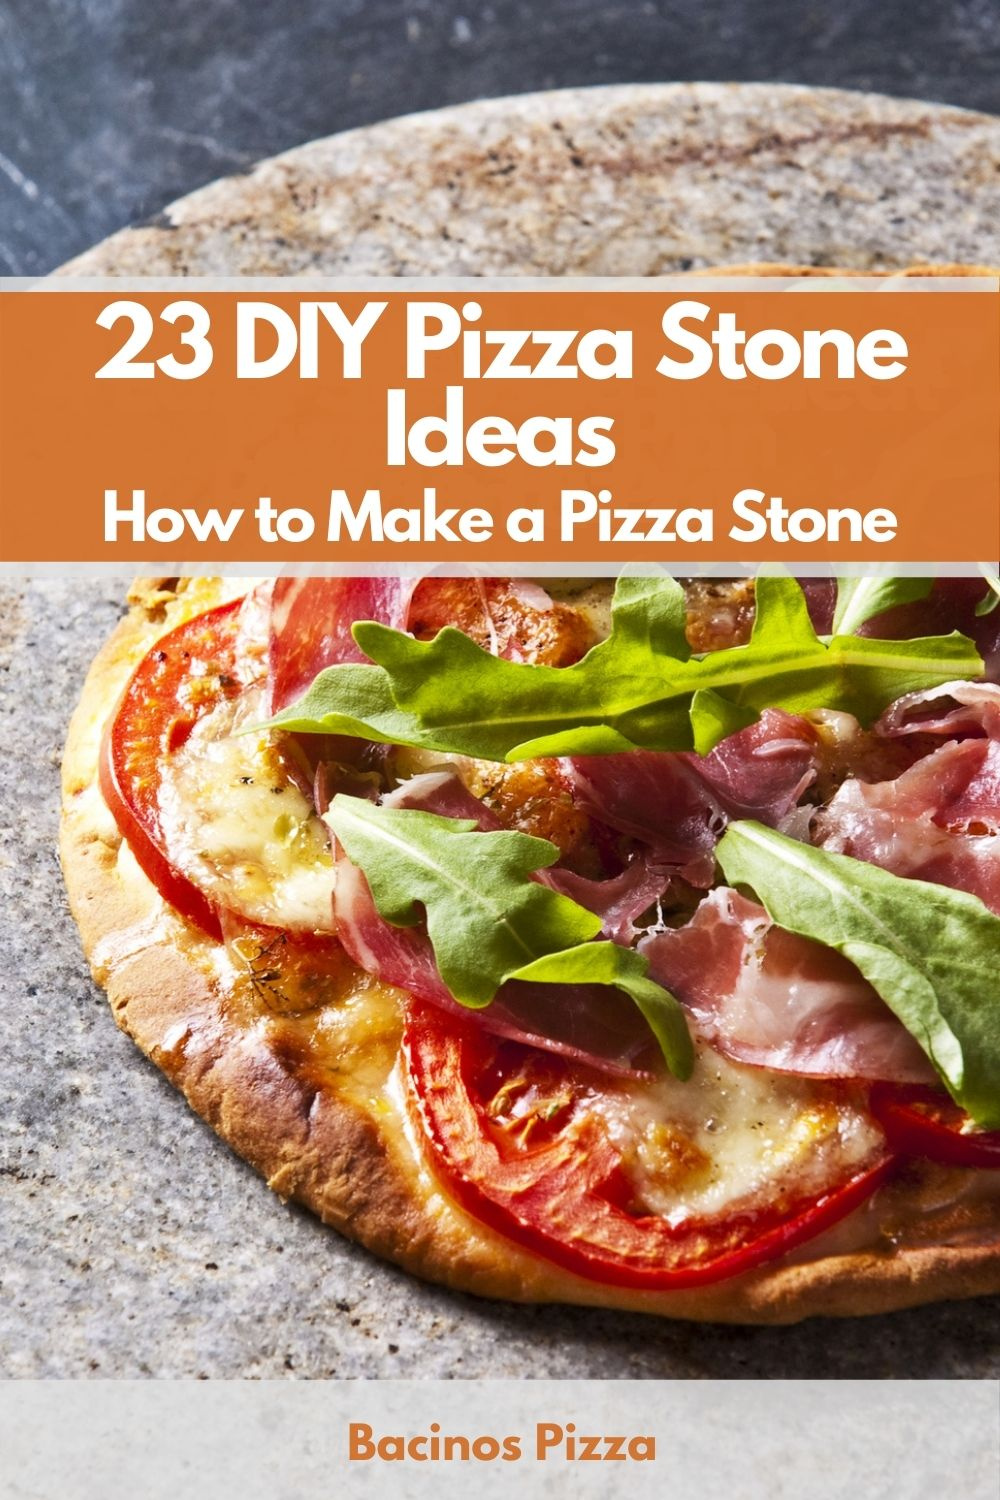 23 DIY Pizza Stone Ideas - How to Make a Pizza Stone pin